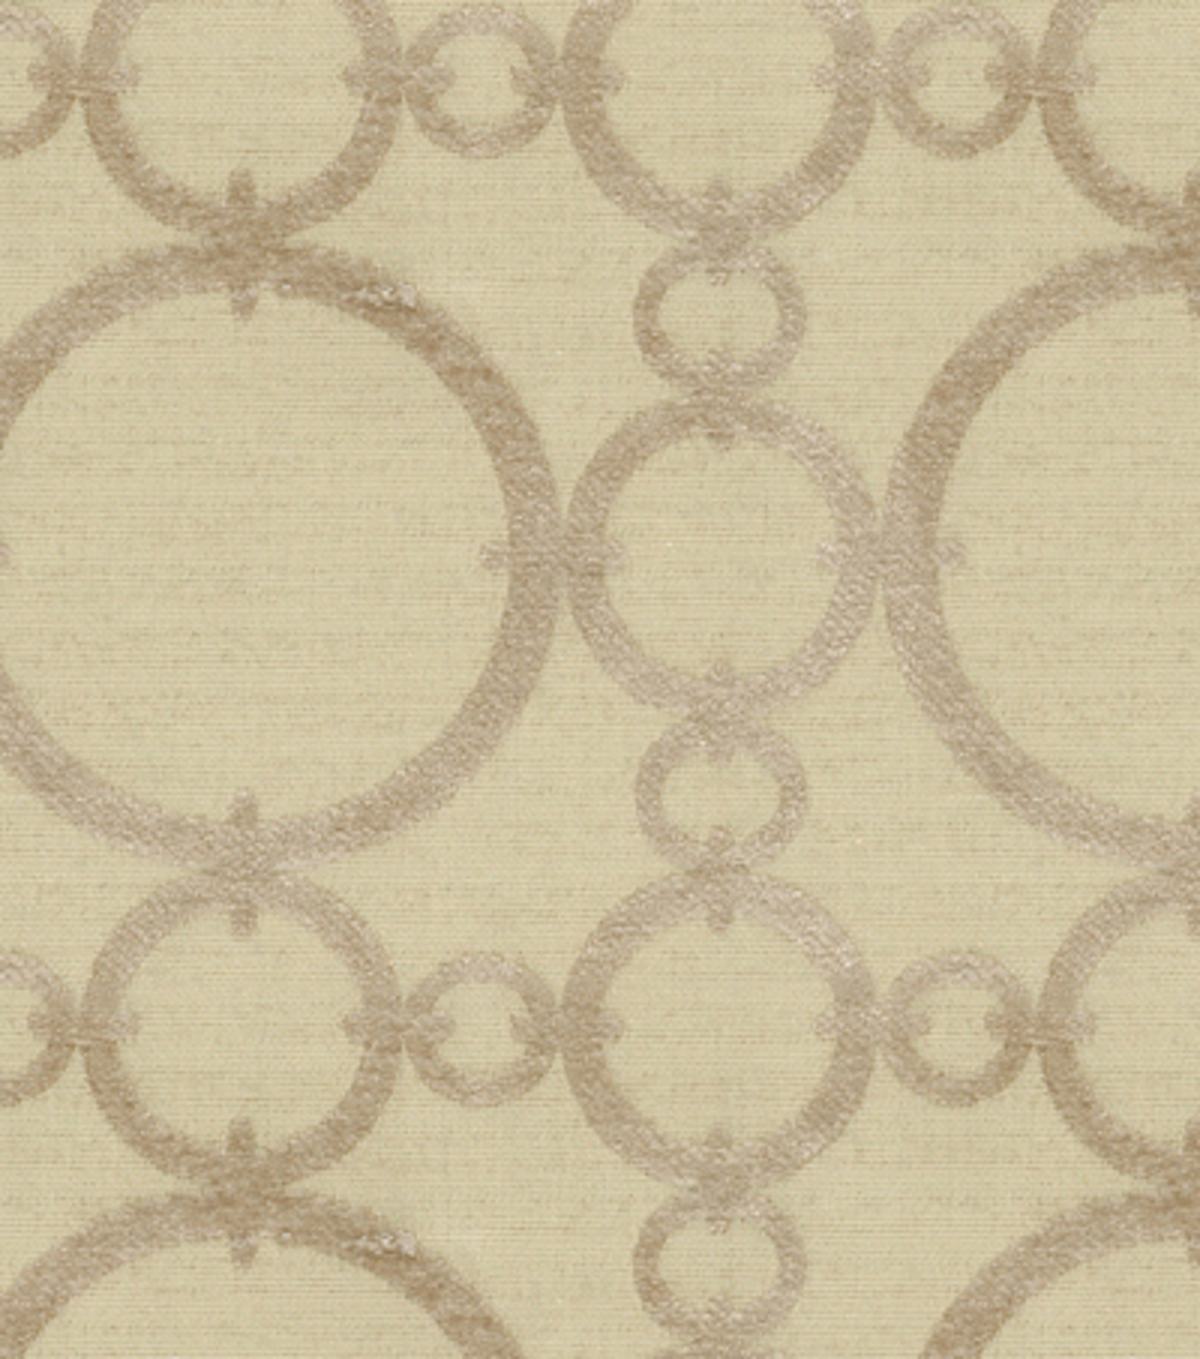 Home Decor 8\u0022x8\u0022 Fabric Swatch-Upholstery Fabric-Waverly Connected/Shimmer